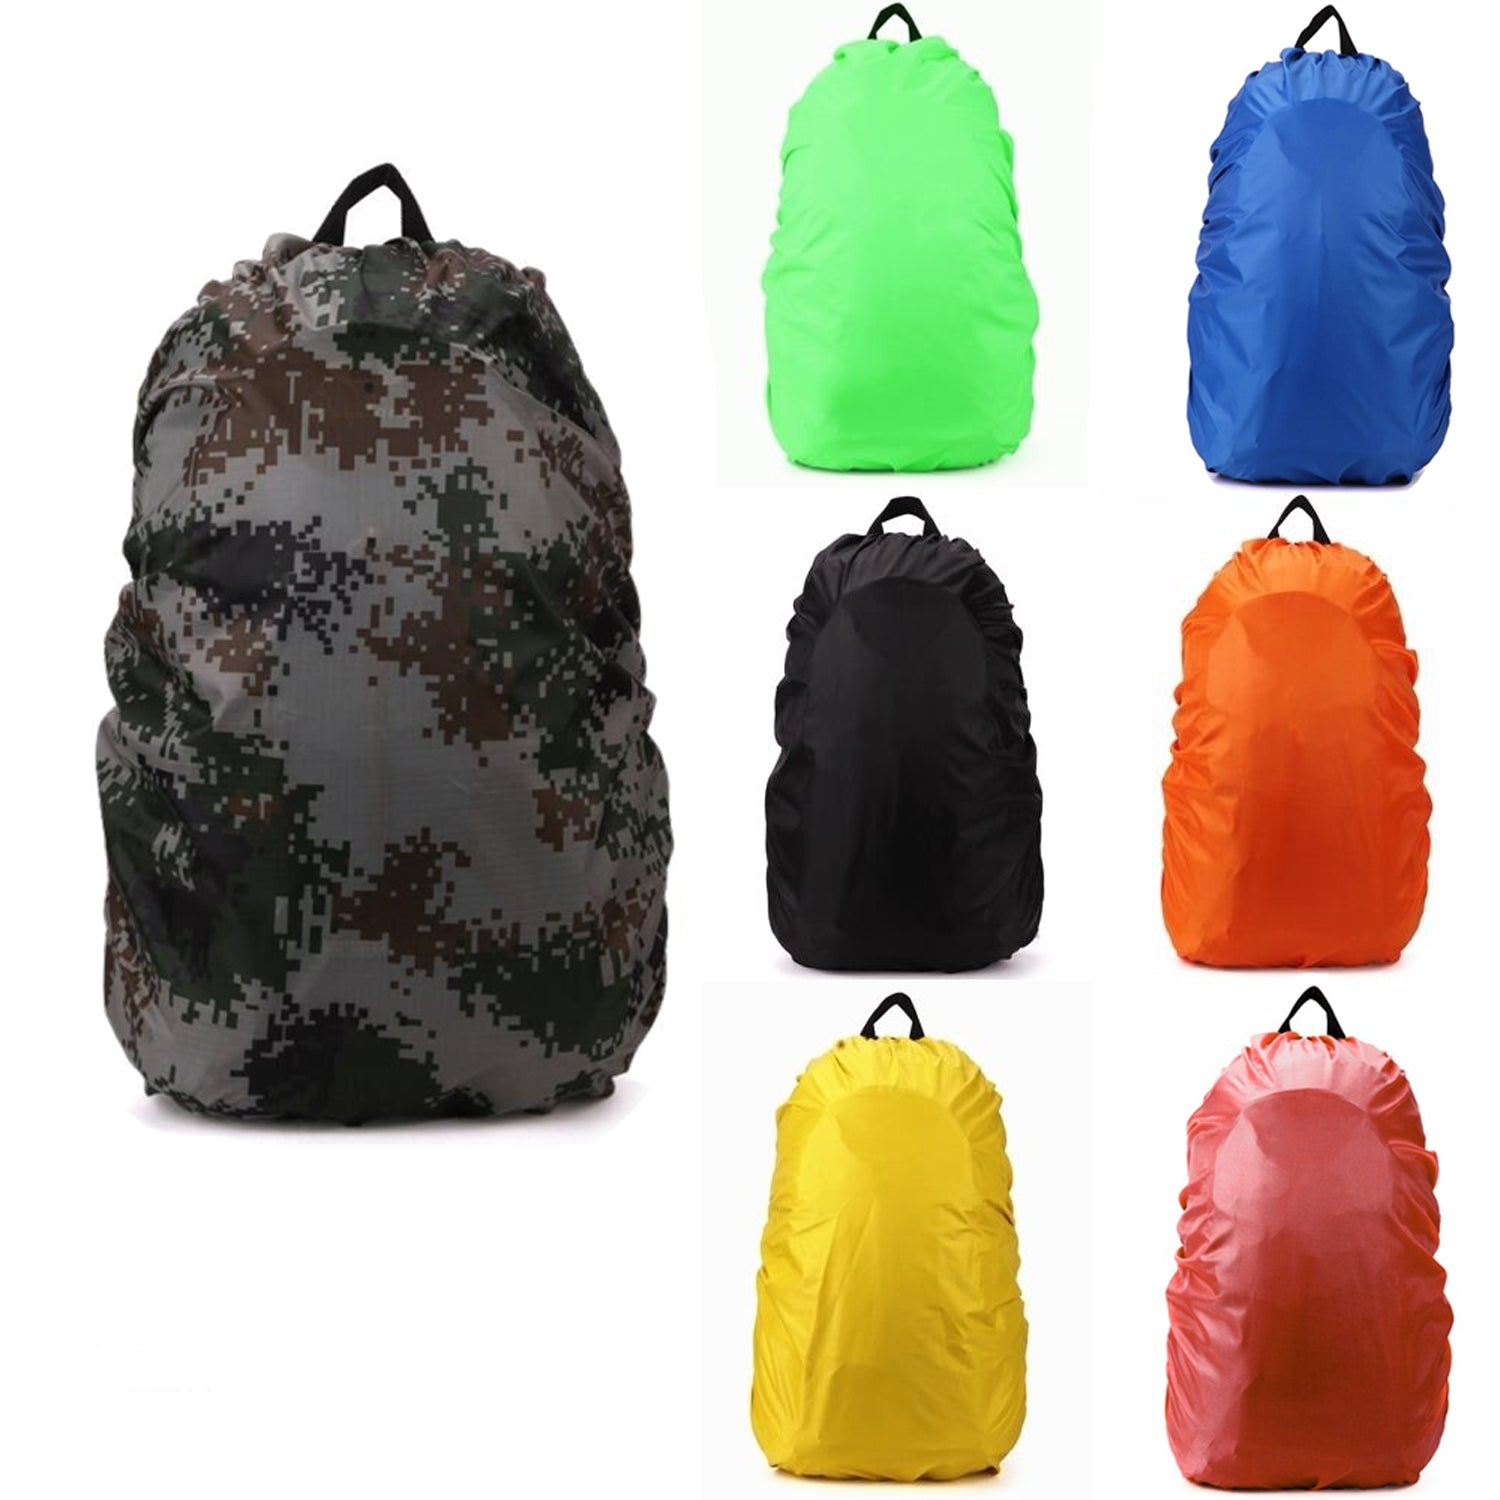 Waterproof Covers Back Pack 35L//70L Bag Camping Hiking Outdoor Rain Accessories